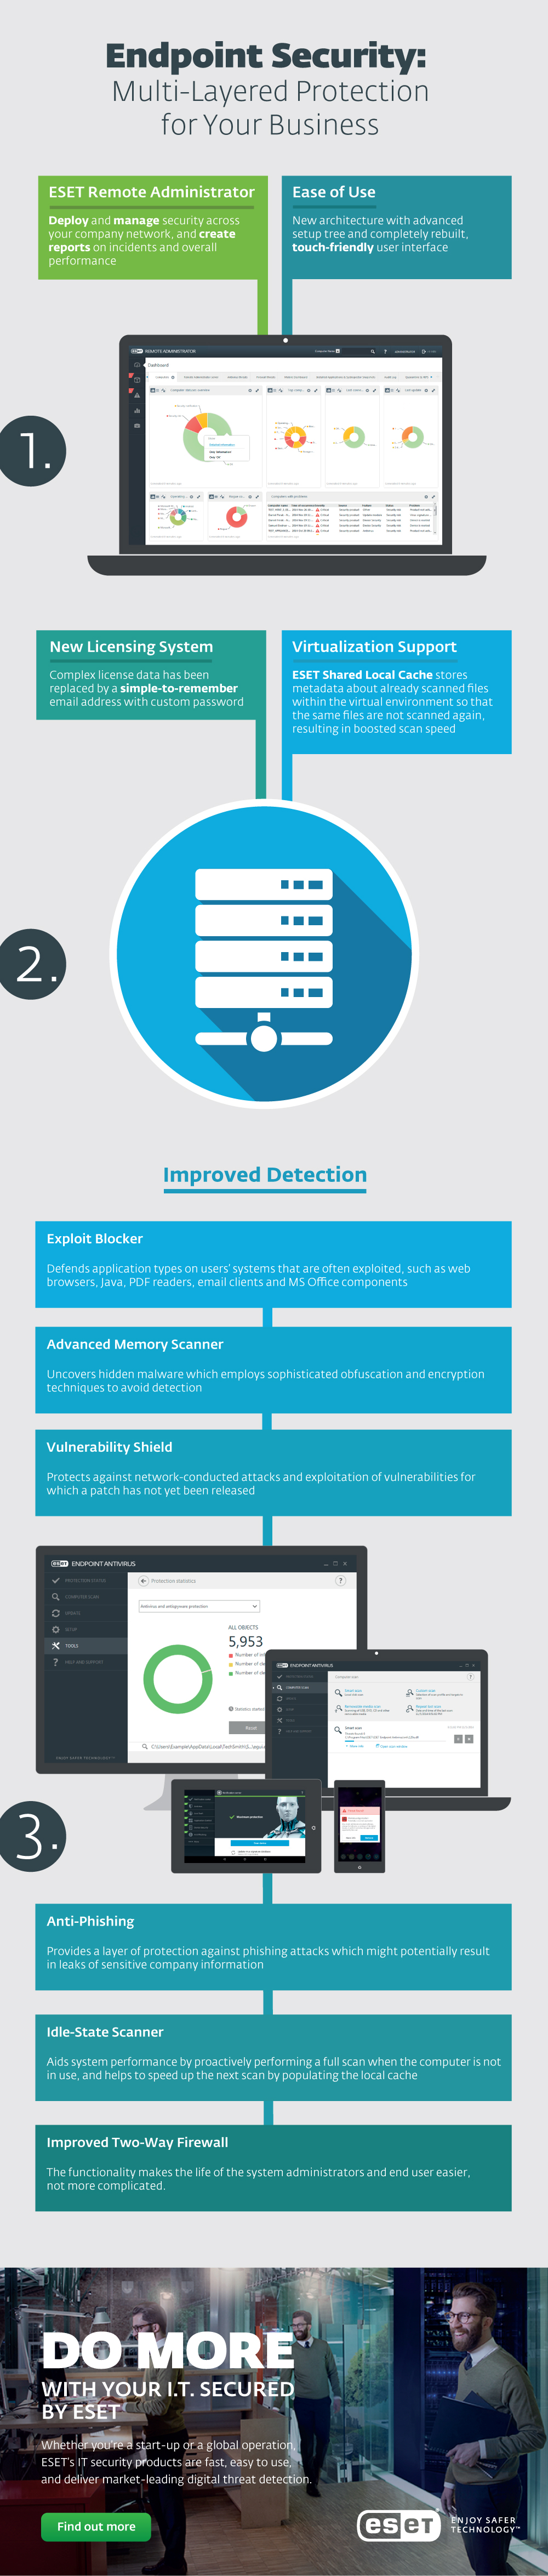 Endpoint_security_MLP_infographic_final